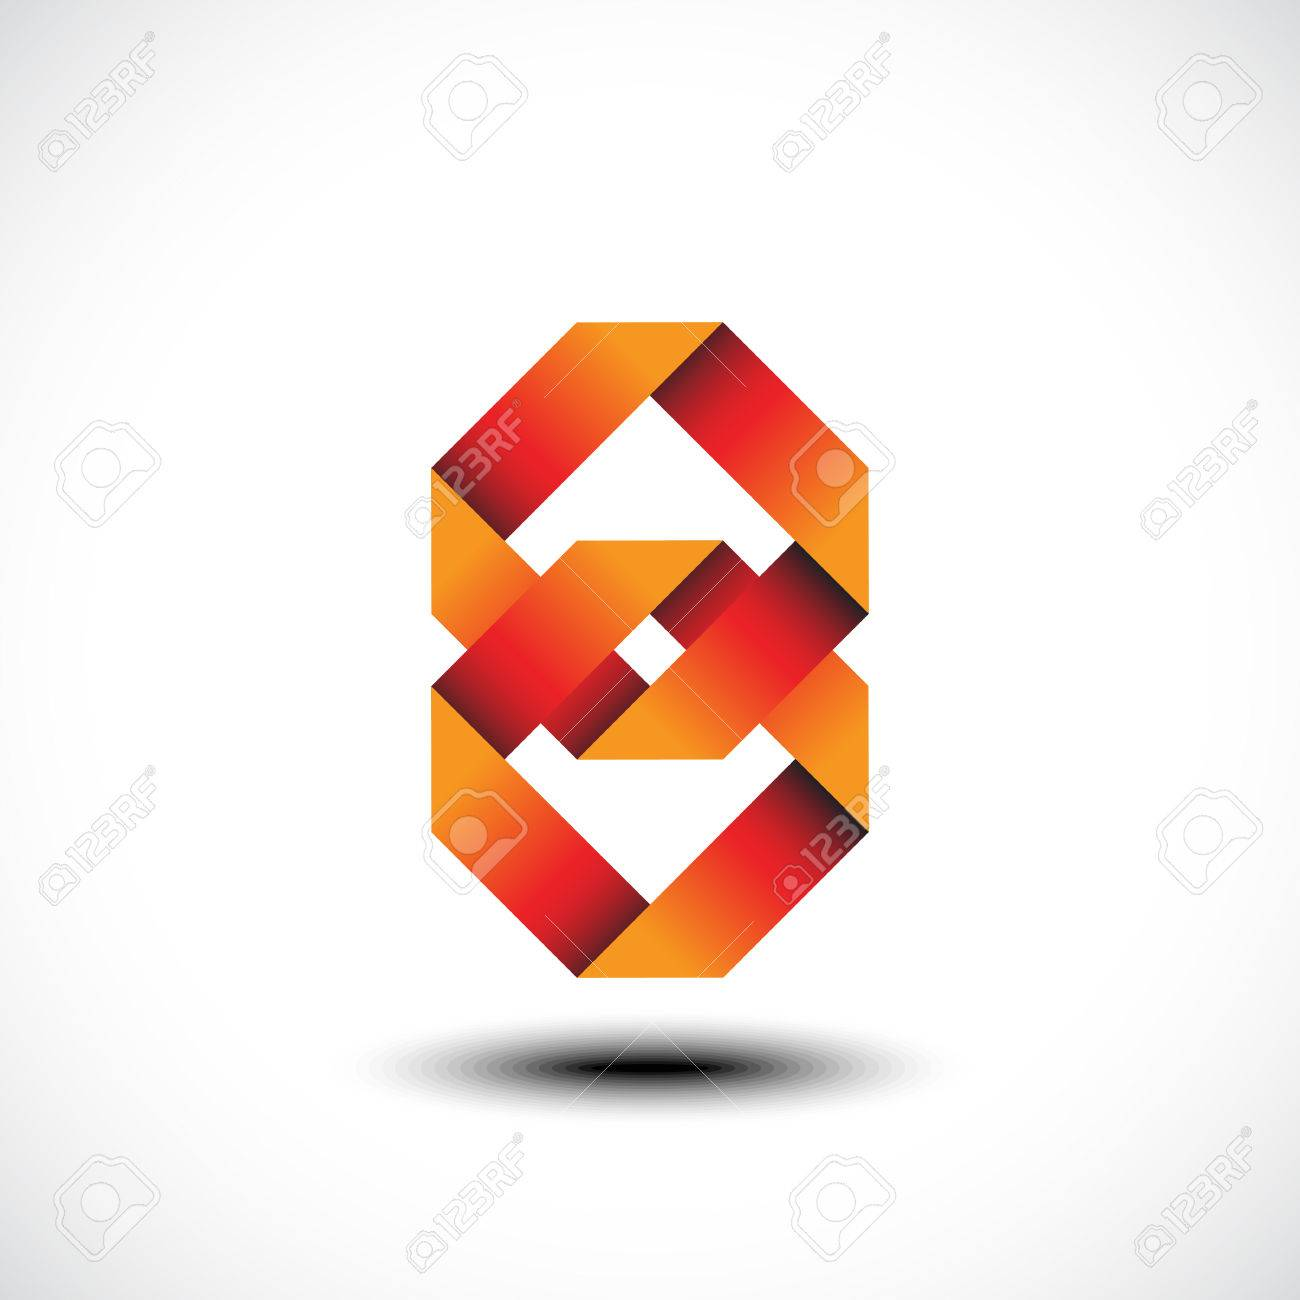 Abstract Unity Symbol Of Two Square Link Icon Vector Illustration